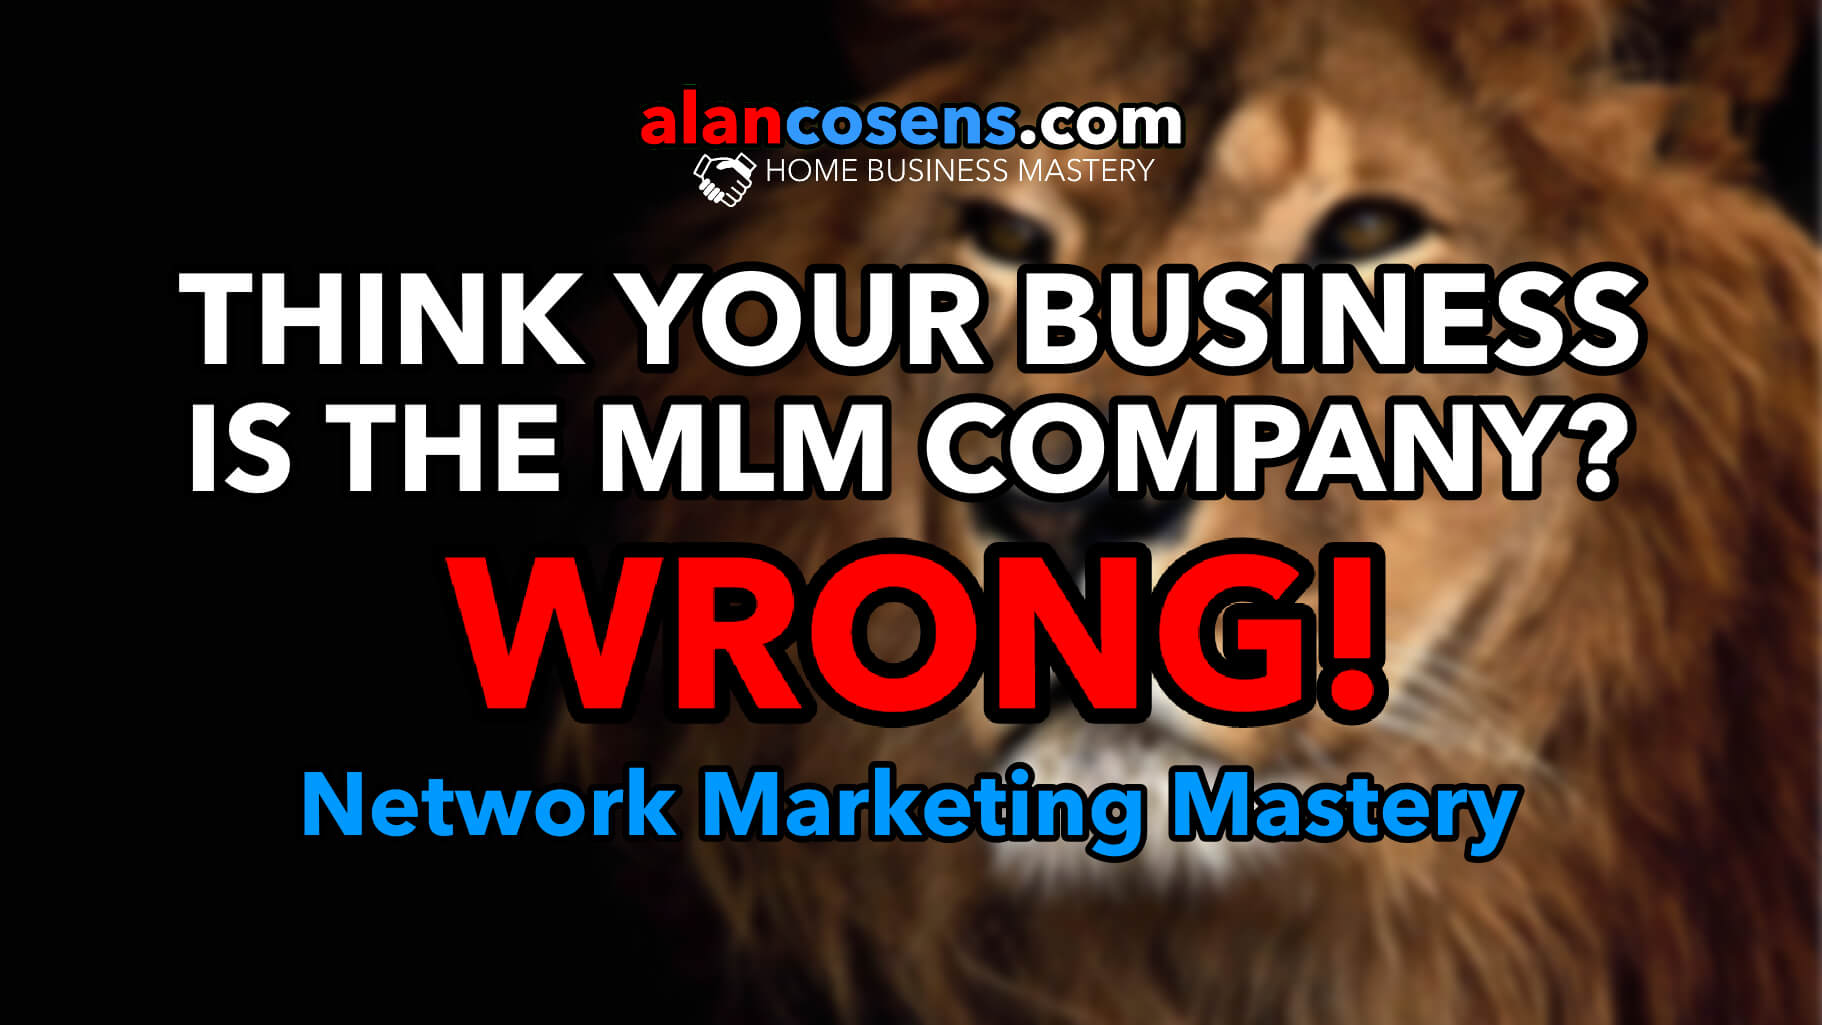 Think Your Business Is The MLM Company? WRONG!